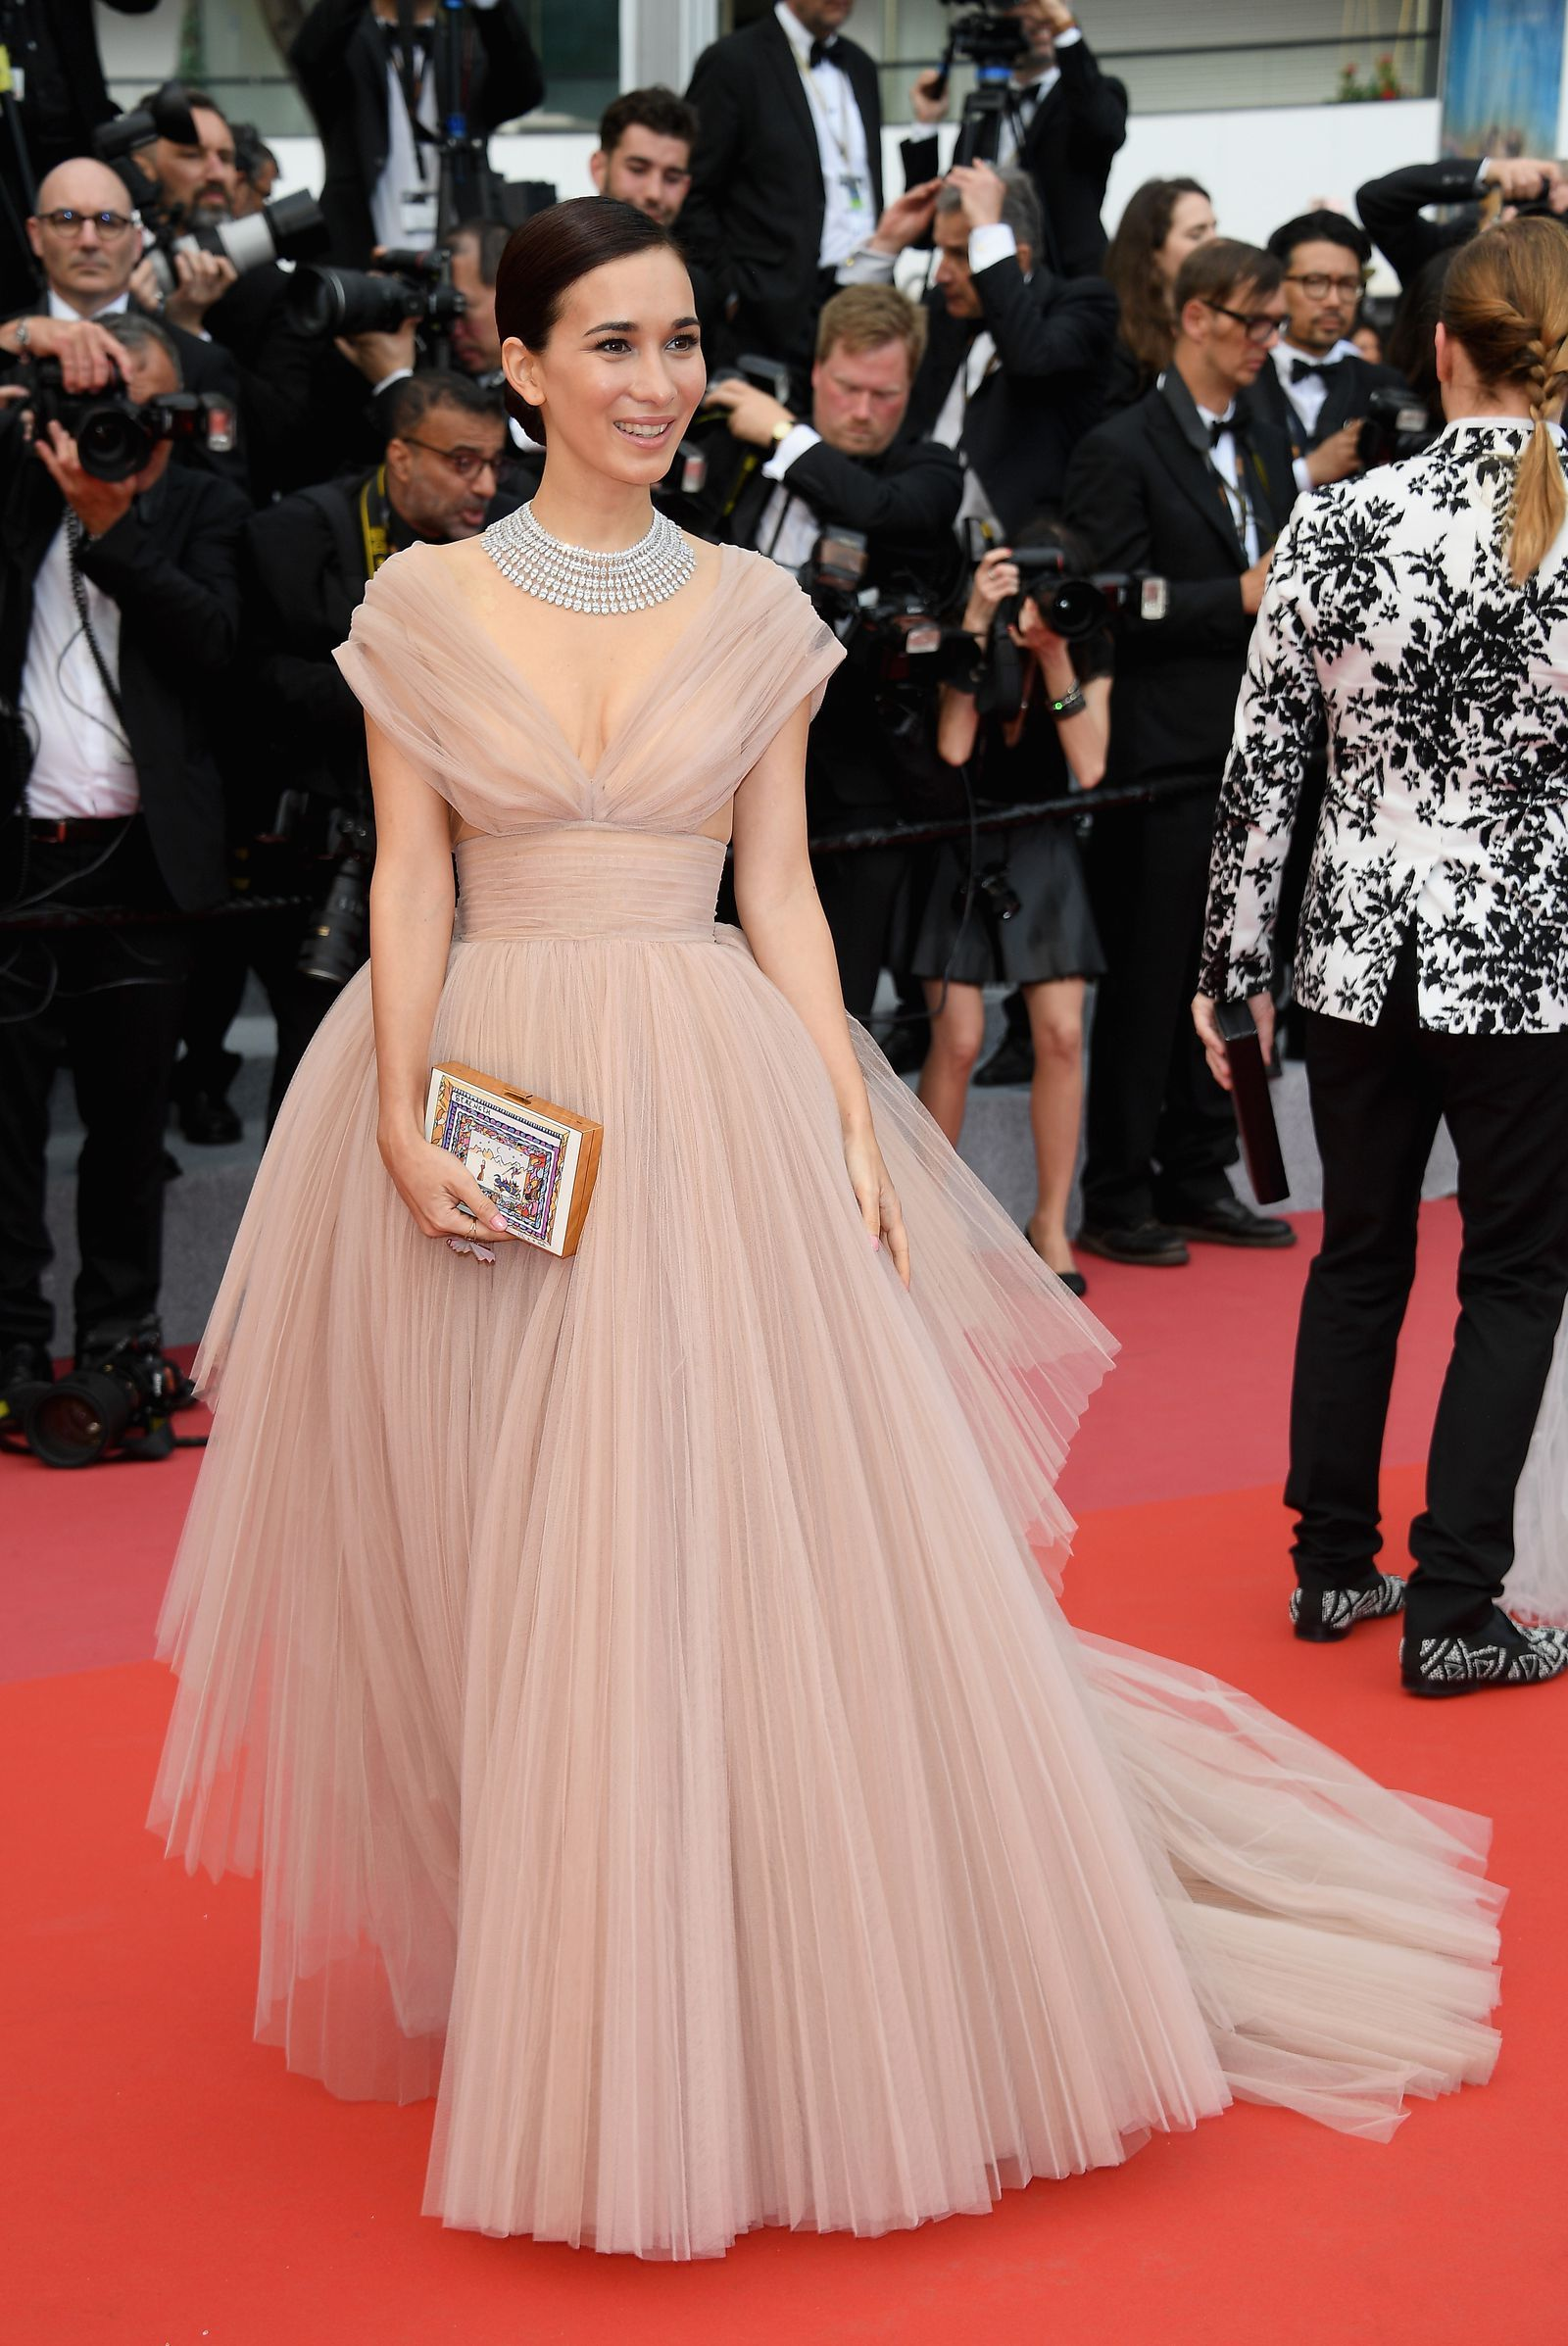 Dreamy: The 33 Most Gorgeous Cannes Looks of All Time images